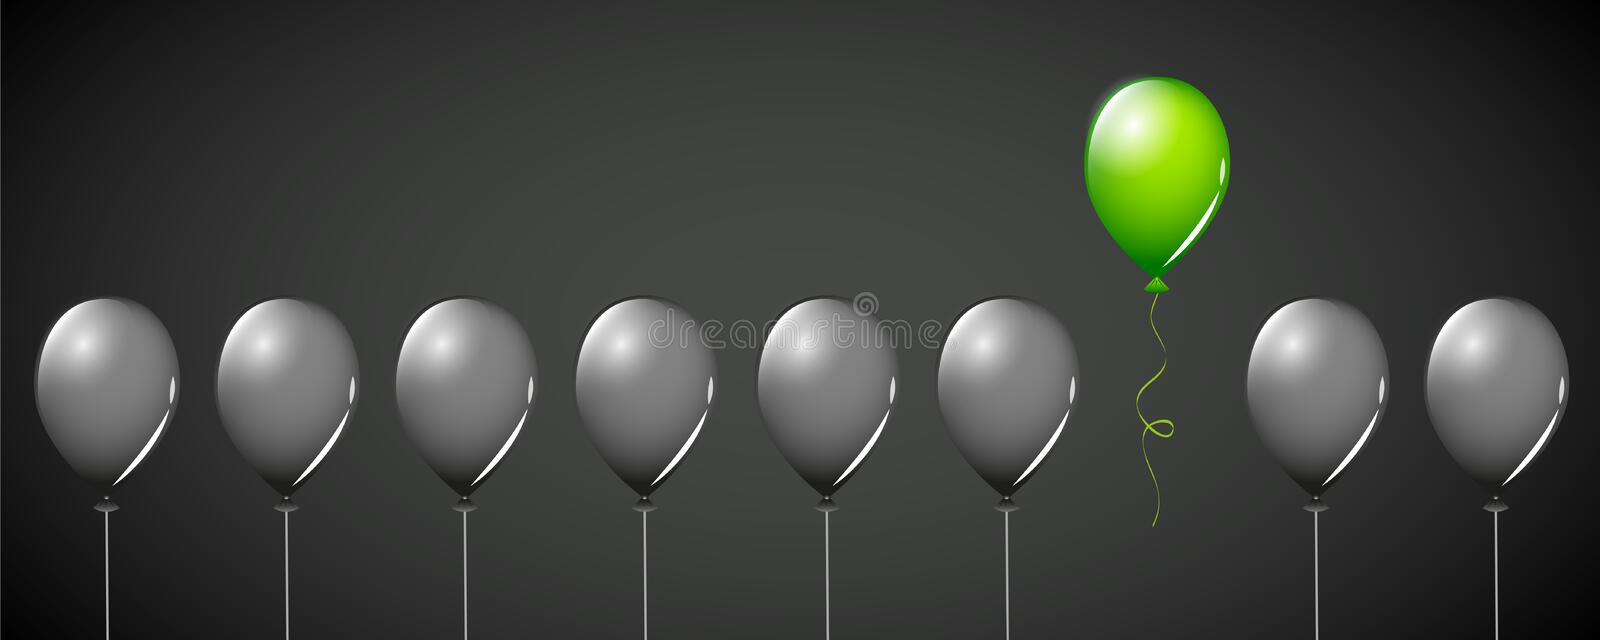 Green balloon fly away from black balloons on black background different concept design stock illustration